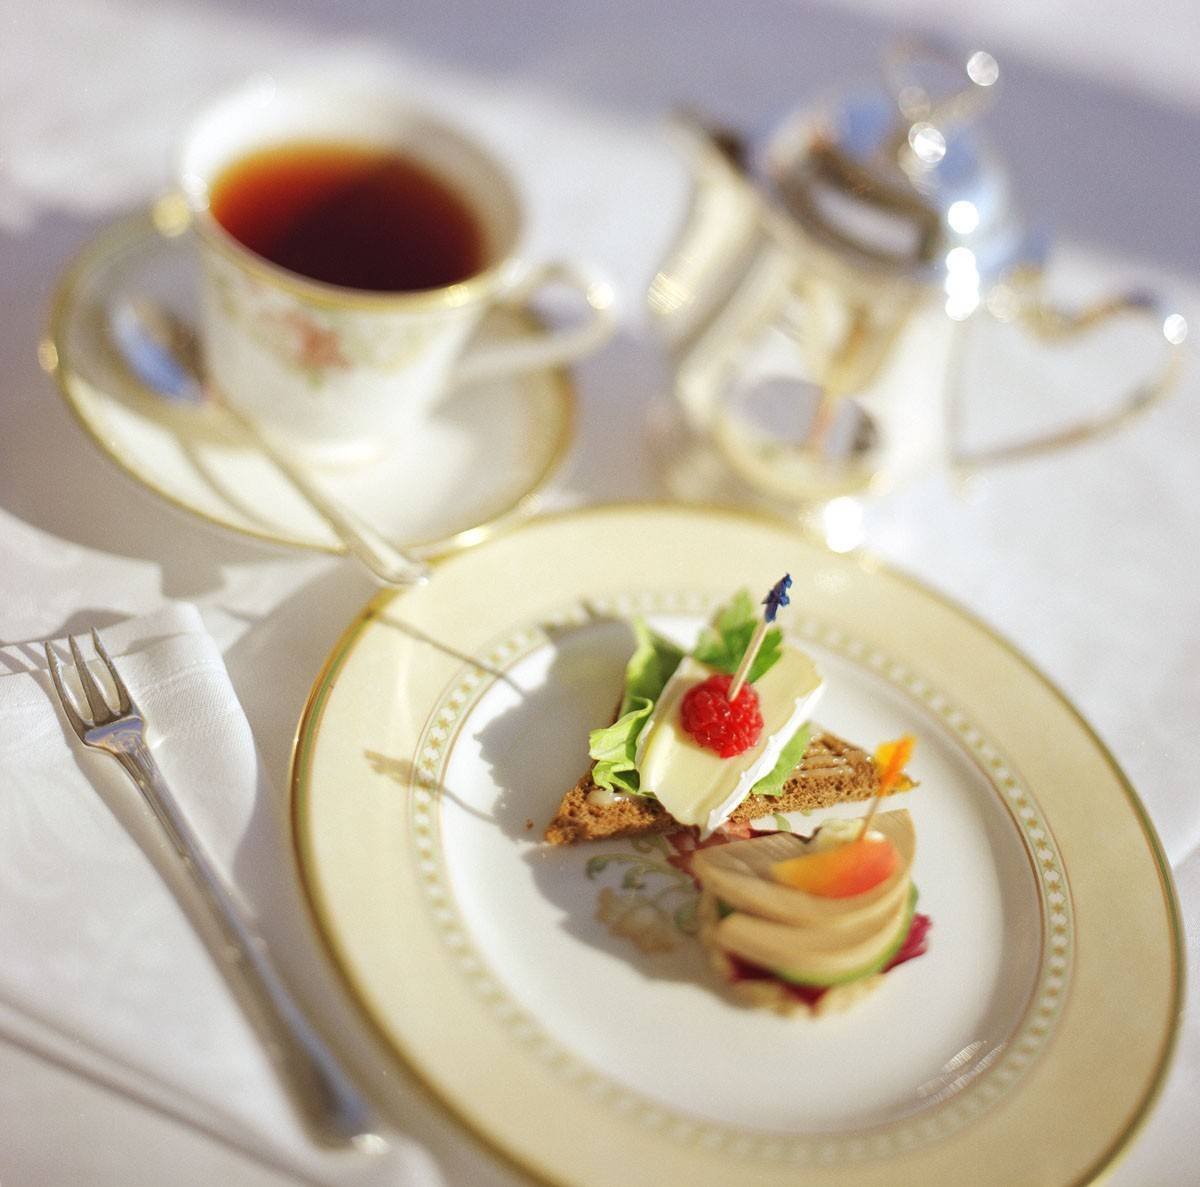 Even those who seek adventure, might enjoy taking a break for afternoon tea on a Crystal Cruise ship.